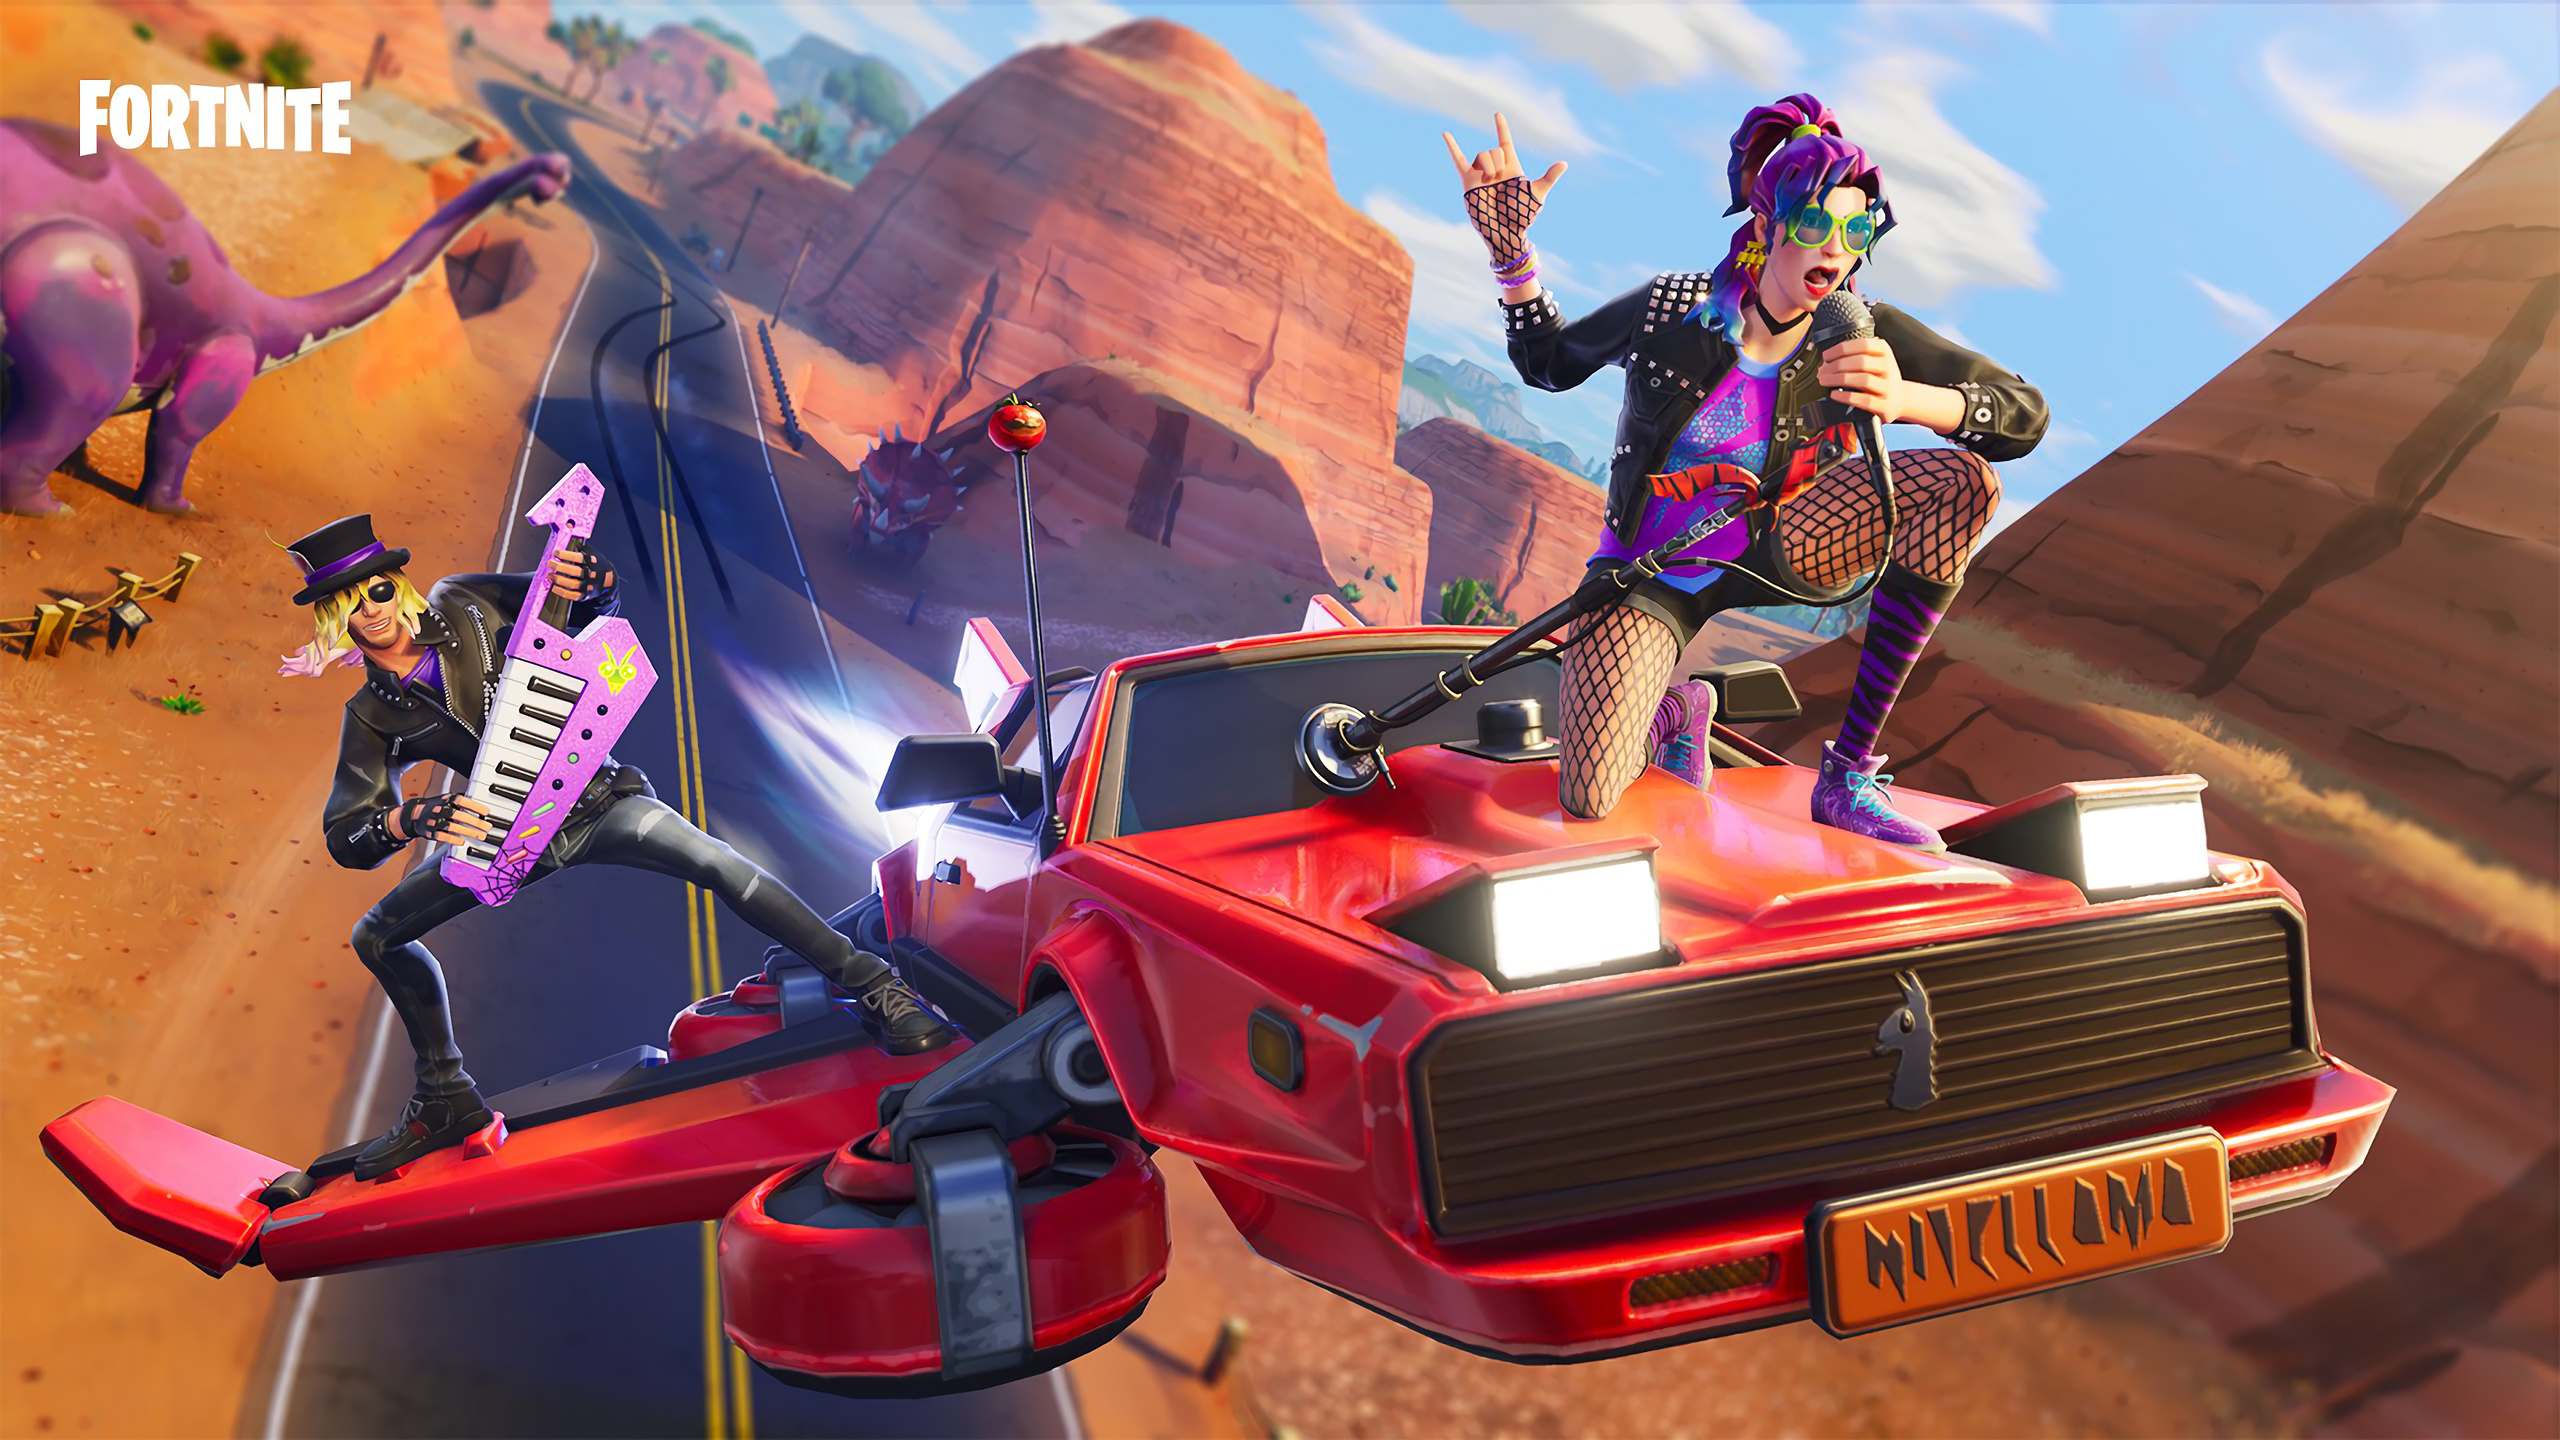 2560x1440 Stage Slayer And Synth Star Fortnite Battle Royale